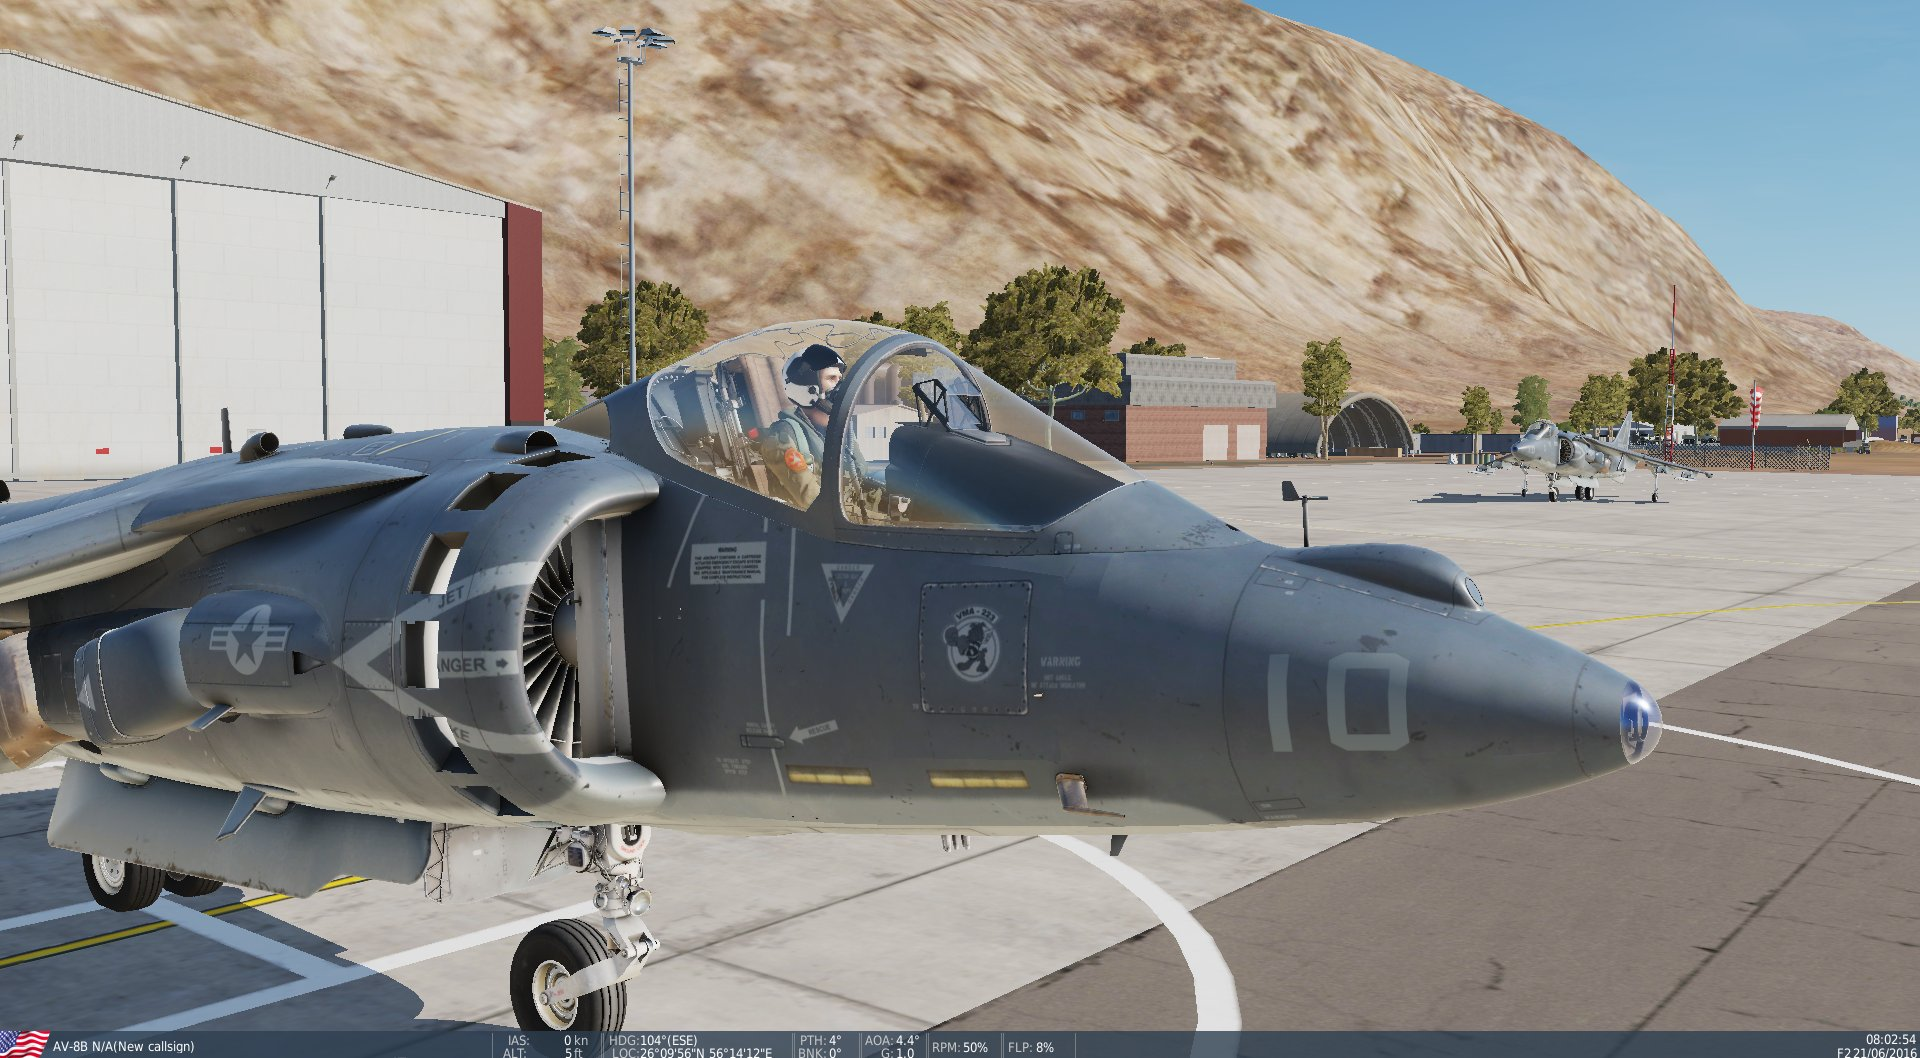 HARRIER DETACHMENT KHASAB